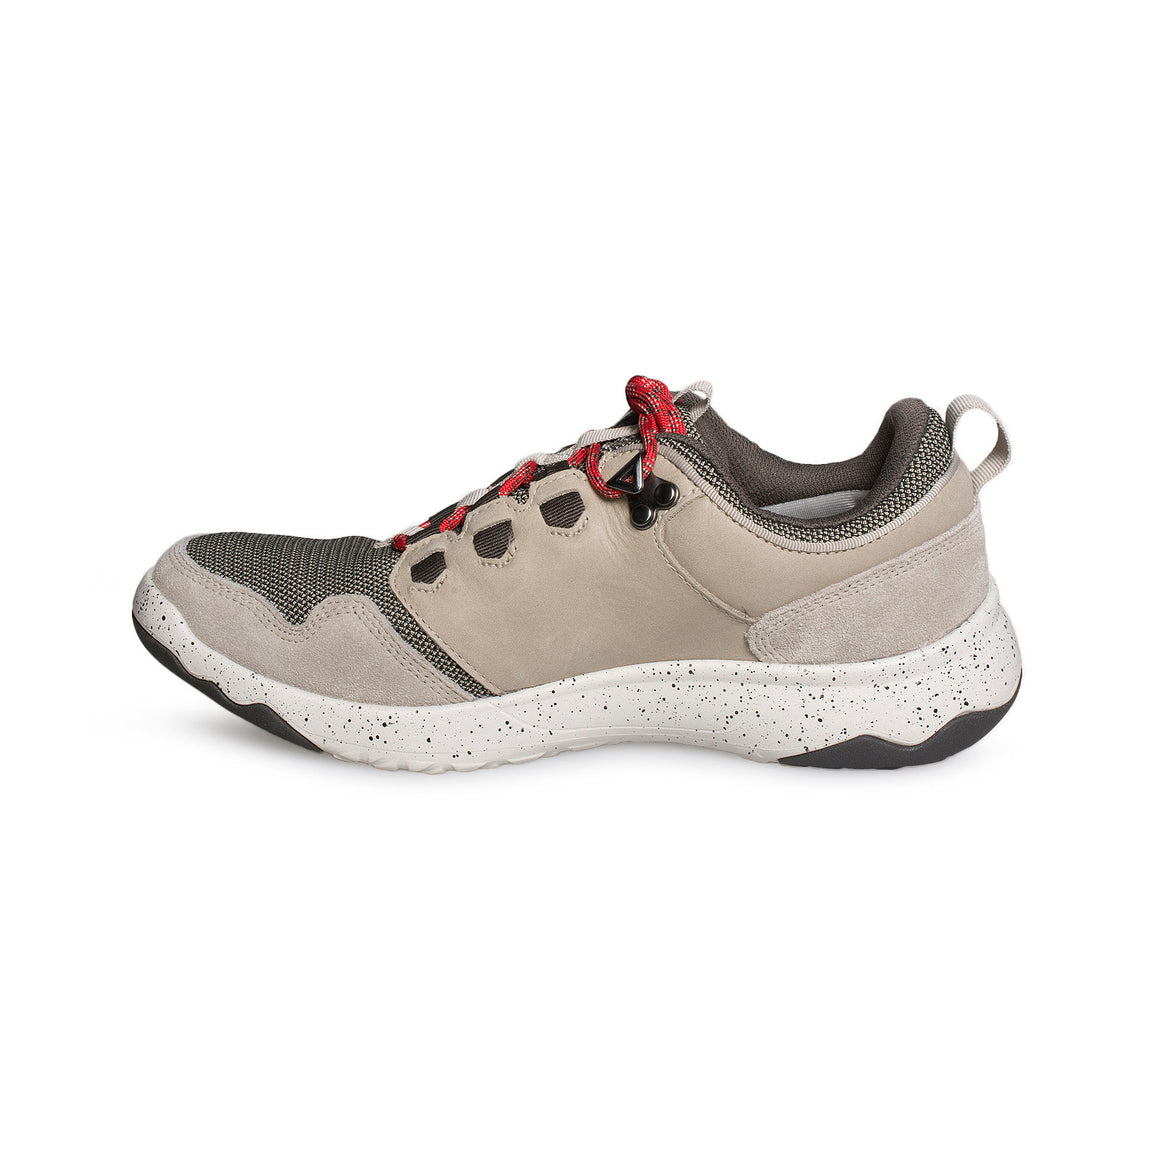 TEVA Arrowood WP Plaza Taupe Shoes - Men's